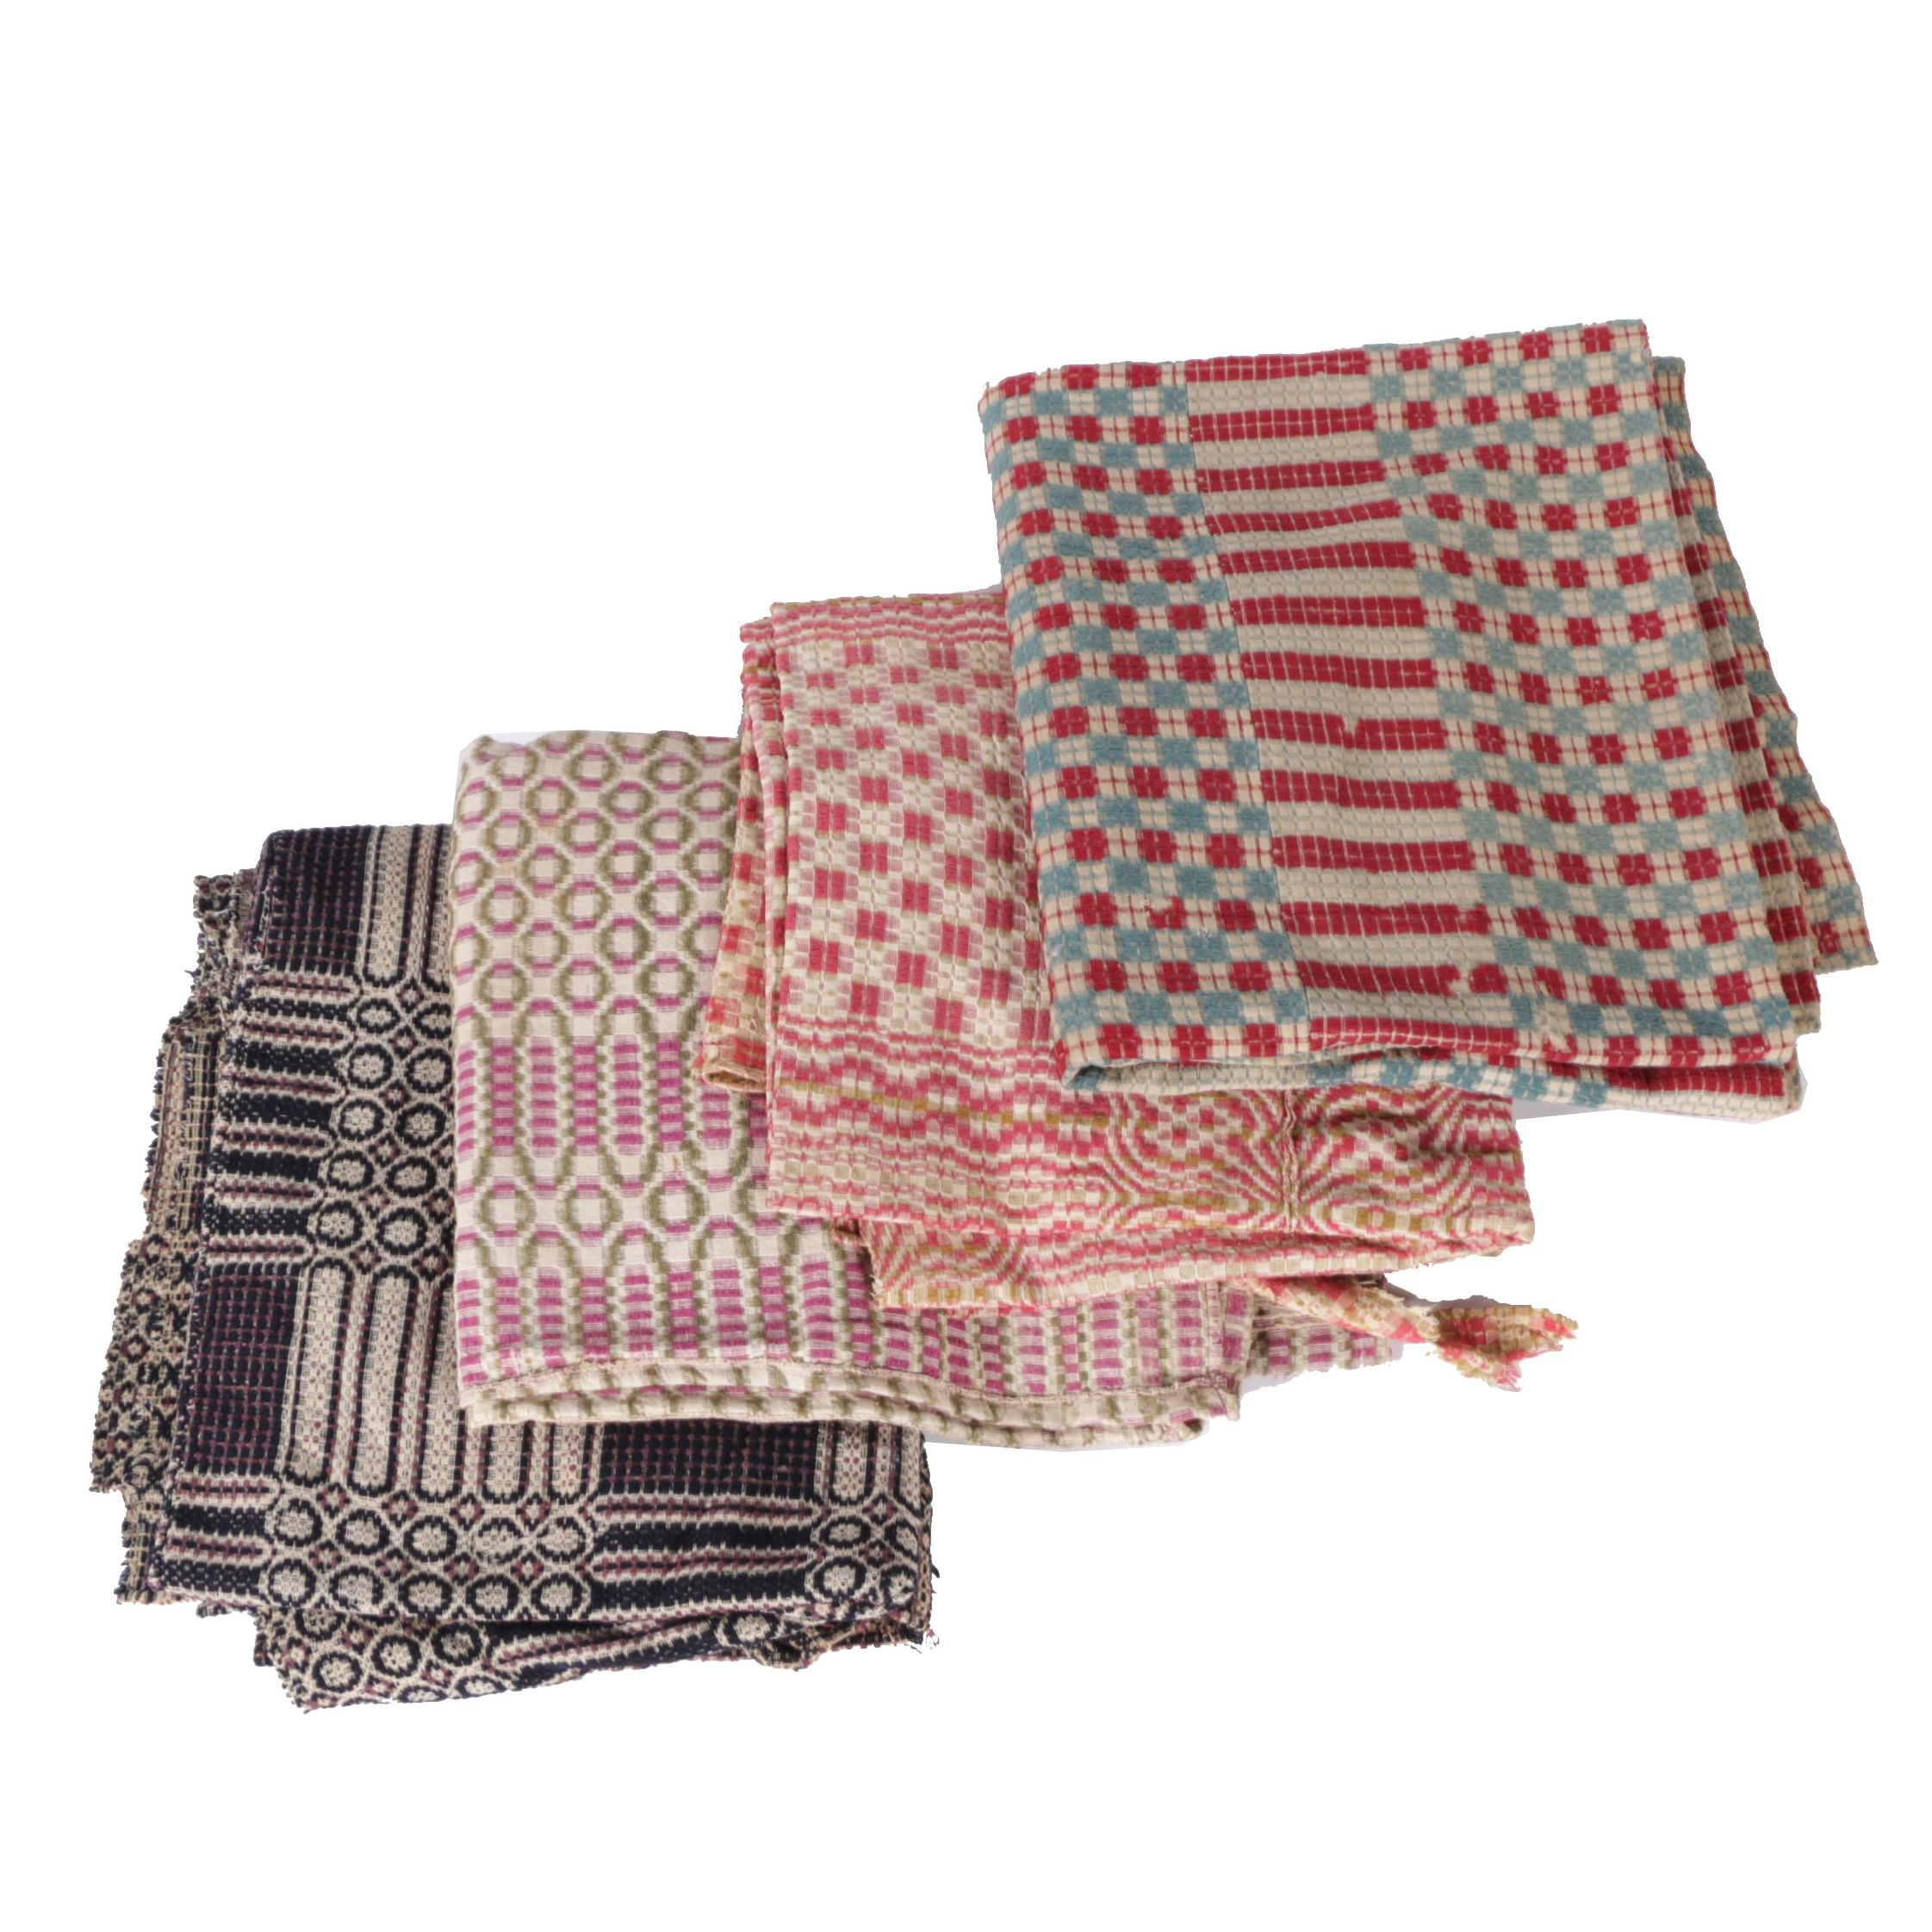 Antique Handwoven Wool Coverlets